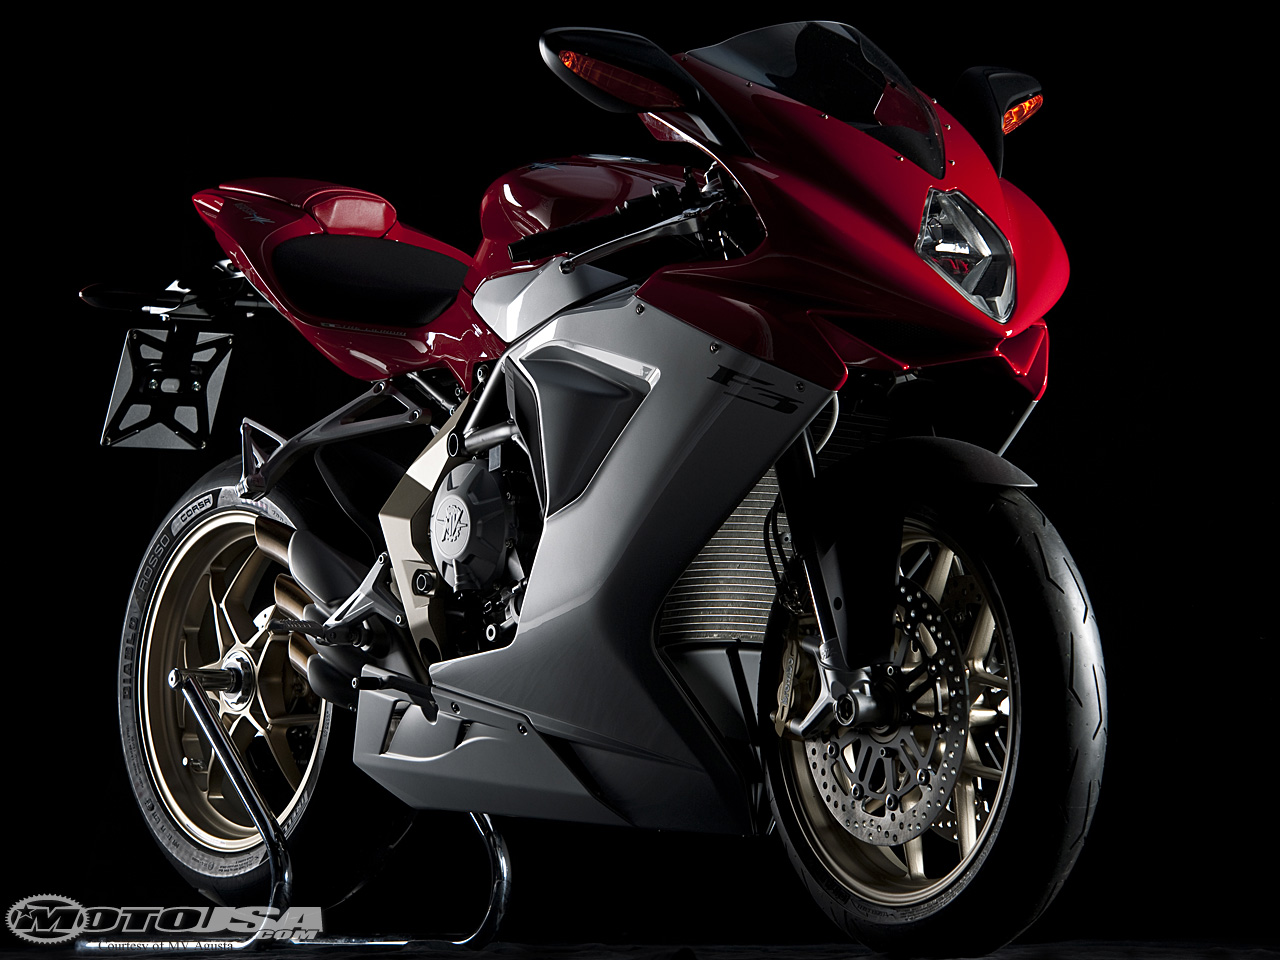 Mv agusta f3 photo - 4